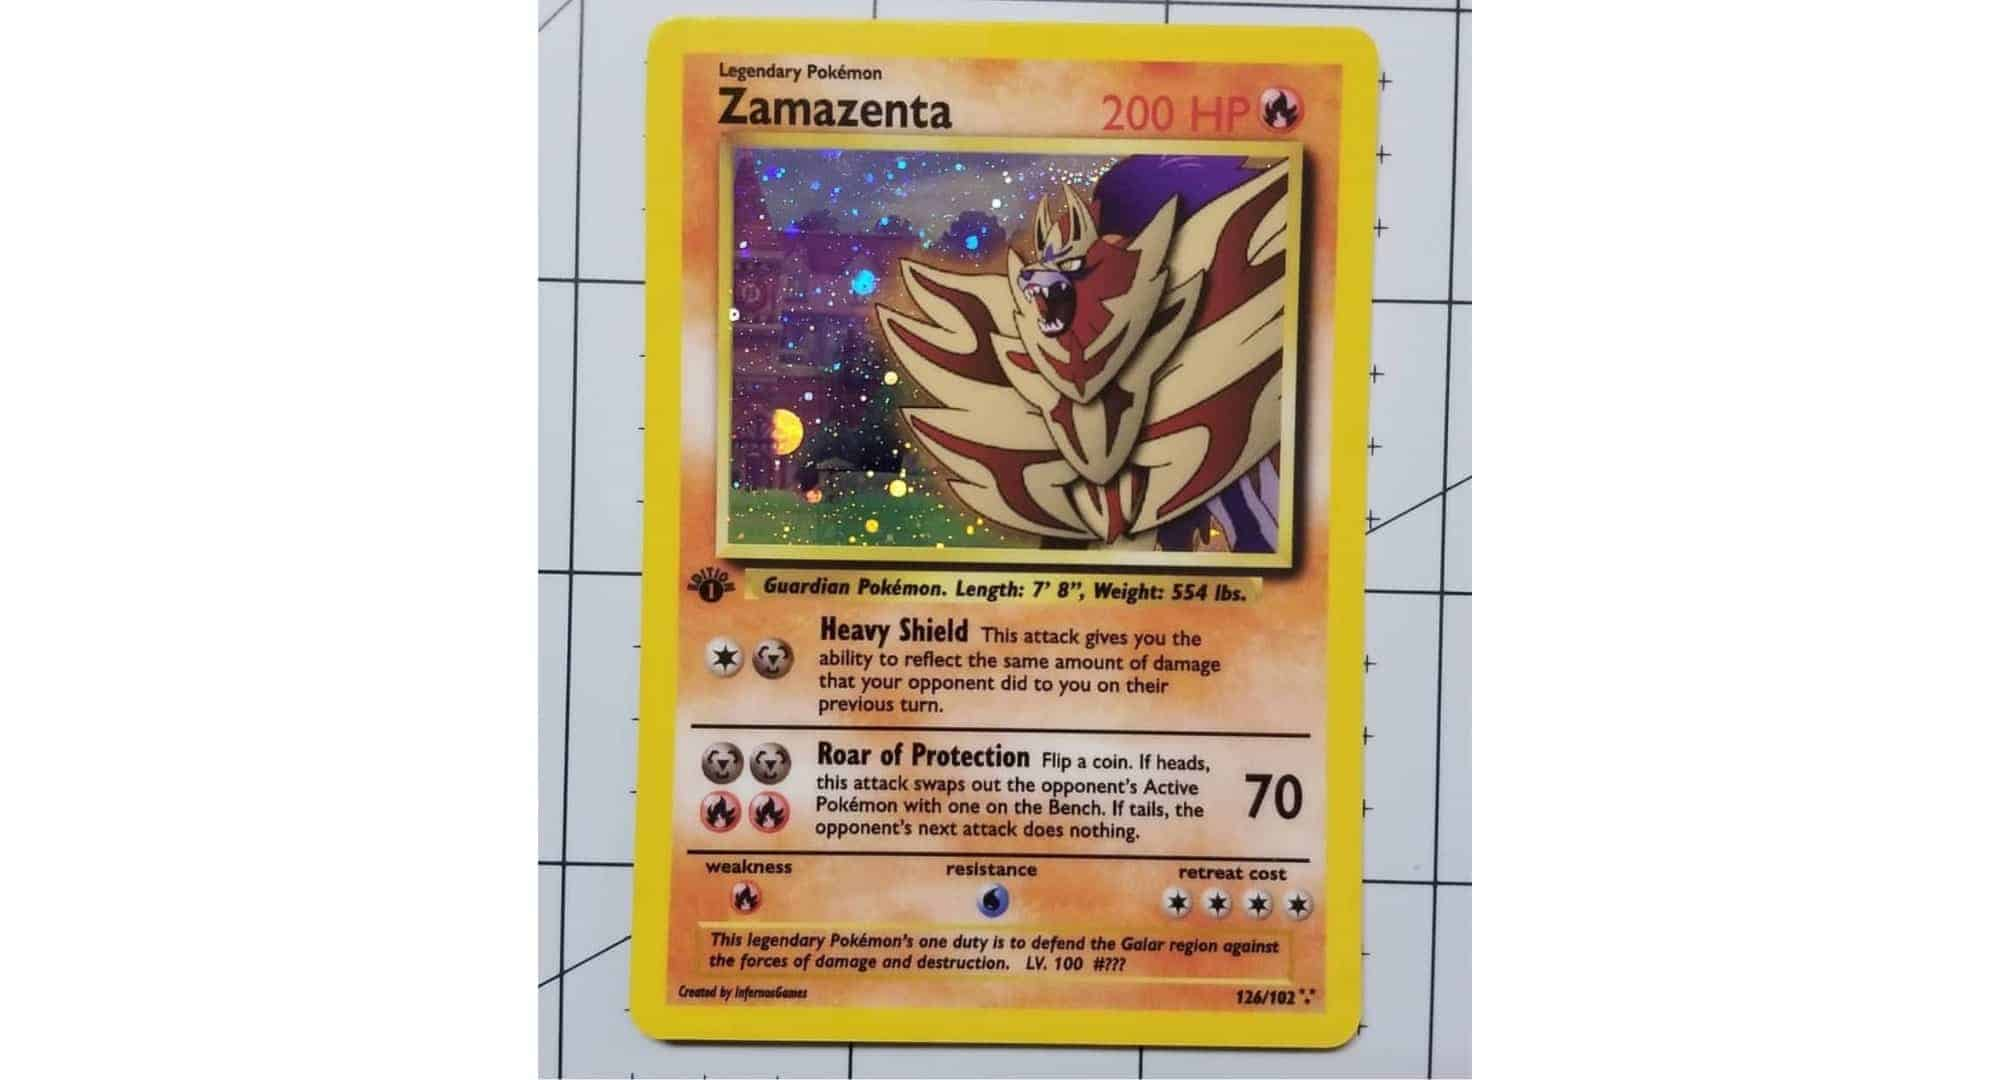 Pokemon TCG Custom Gen8 Trading Card Legendary Zamazenta Holo by Pokemondecals CardCollectors